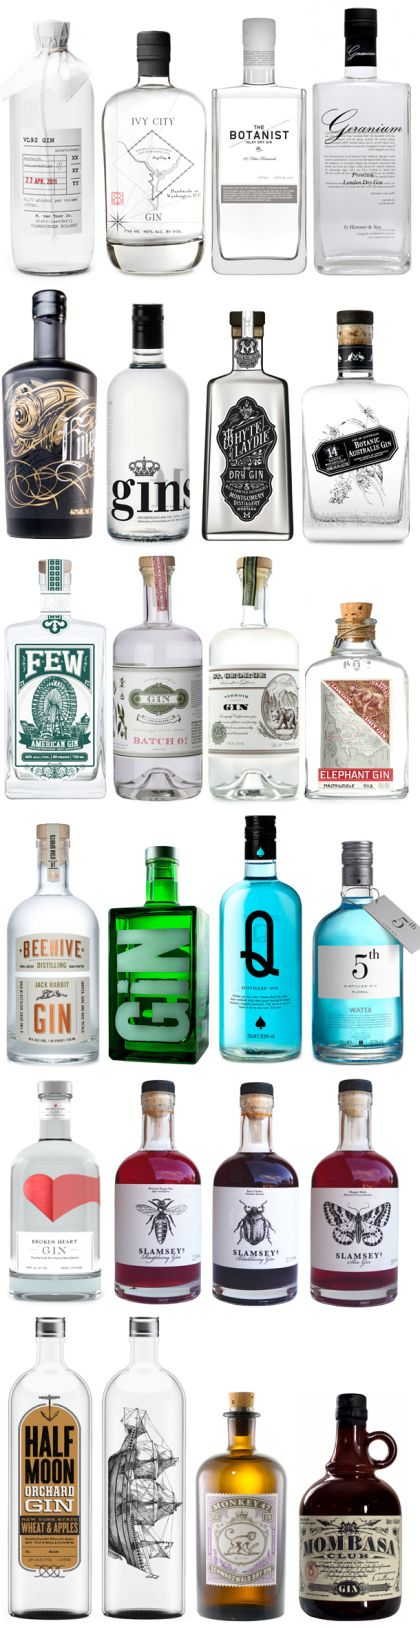 Love this! So many gins to try!